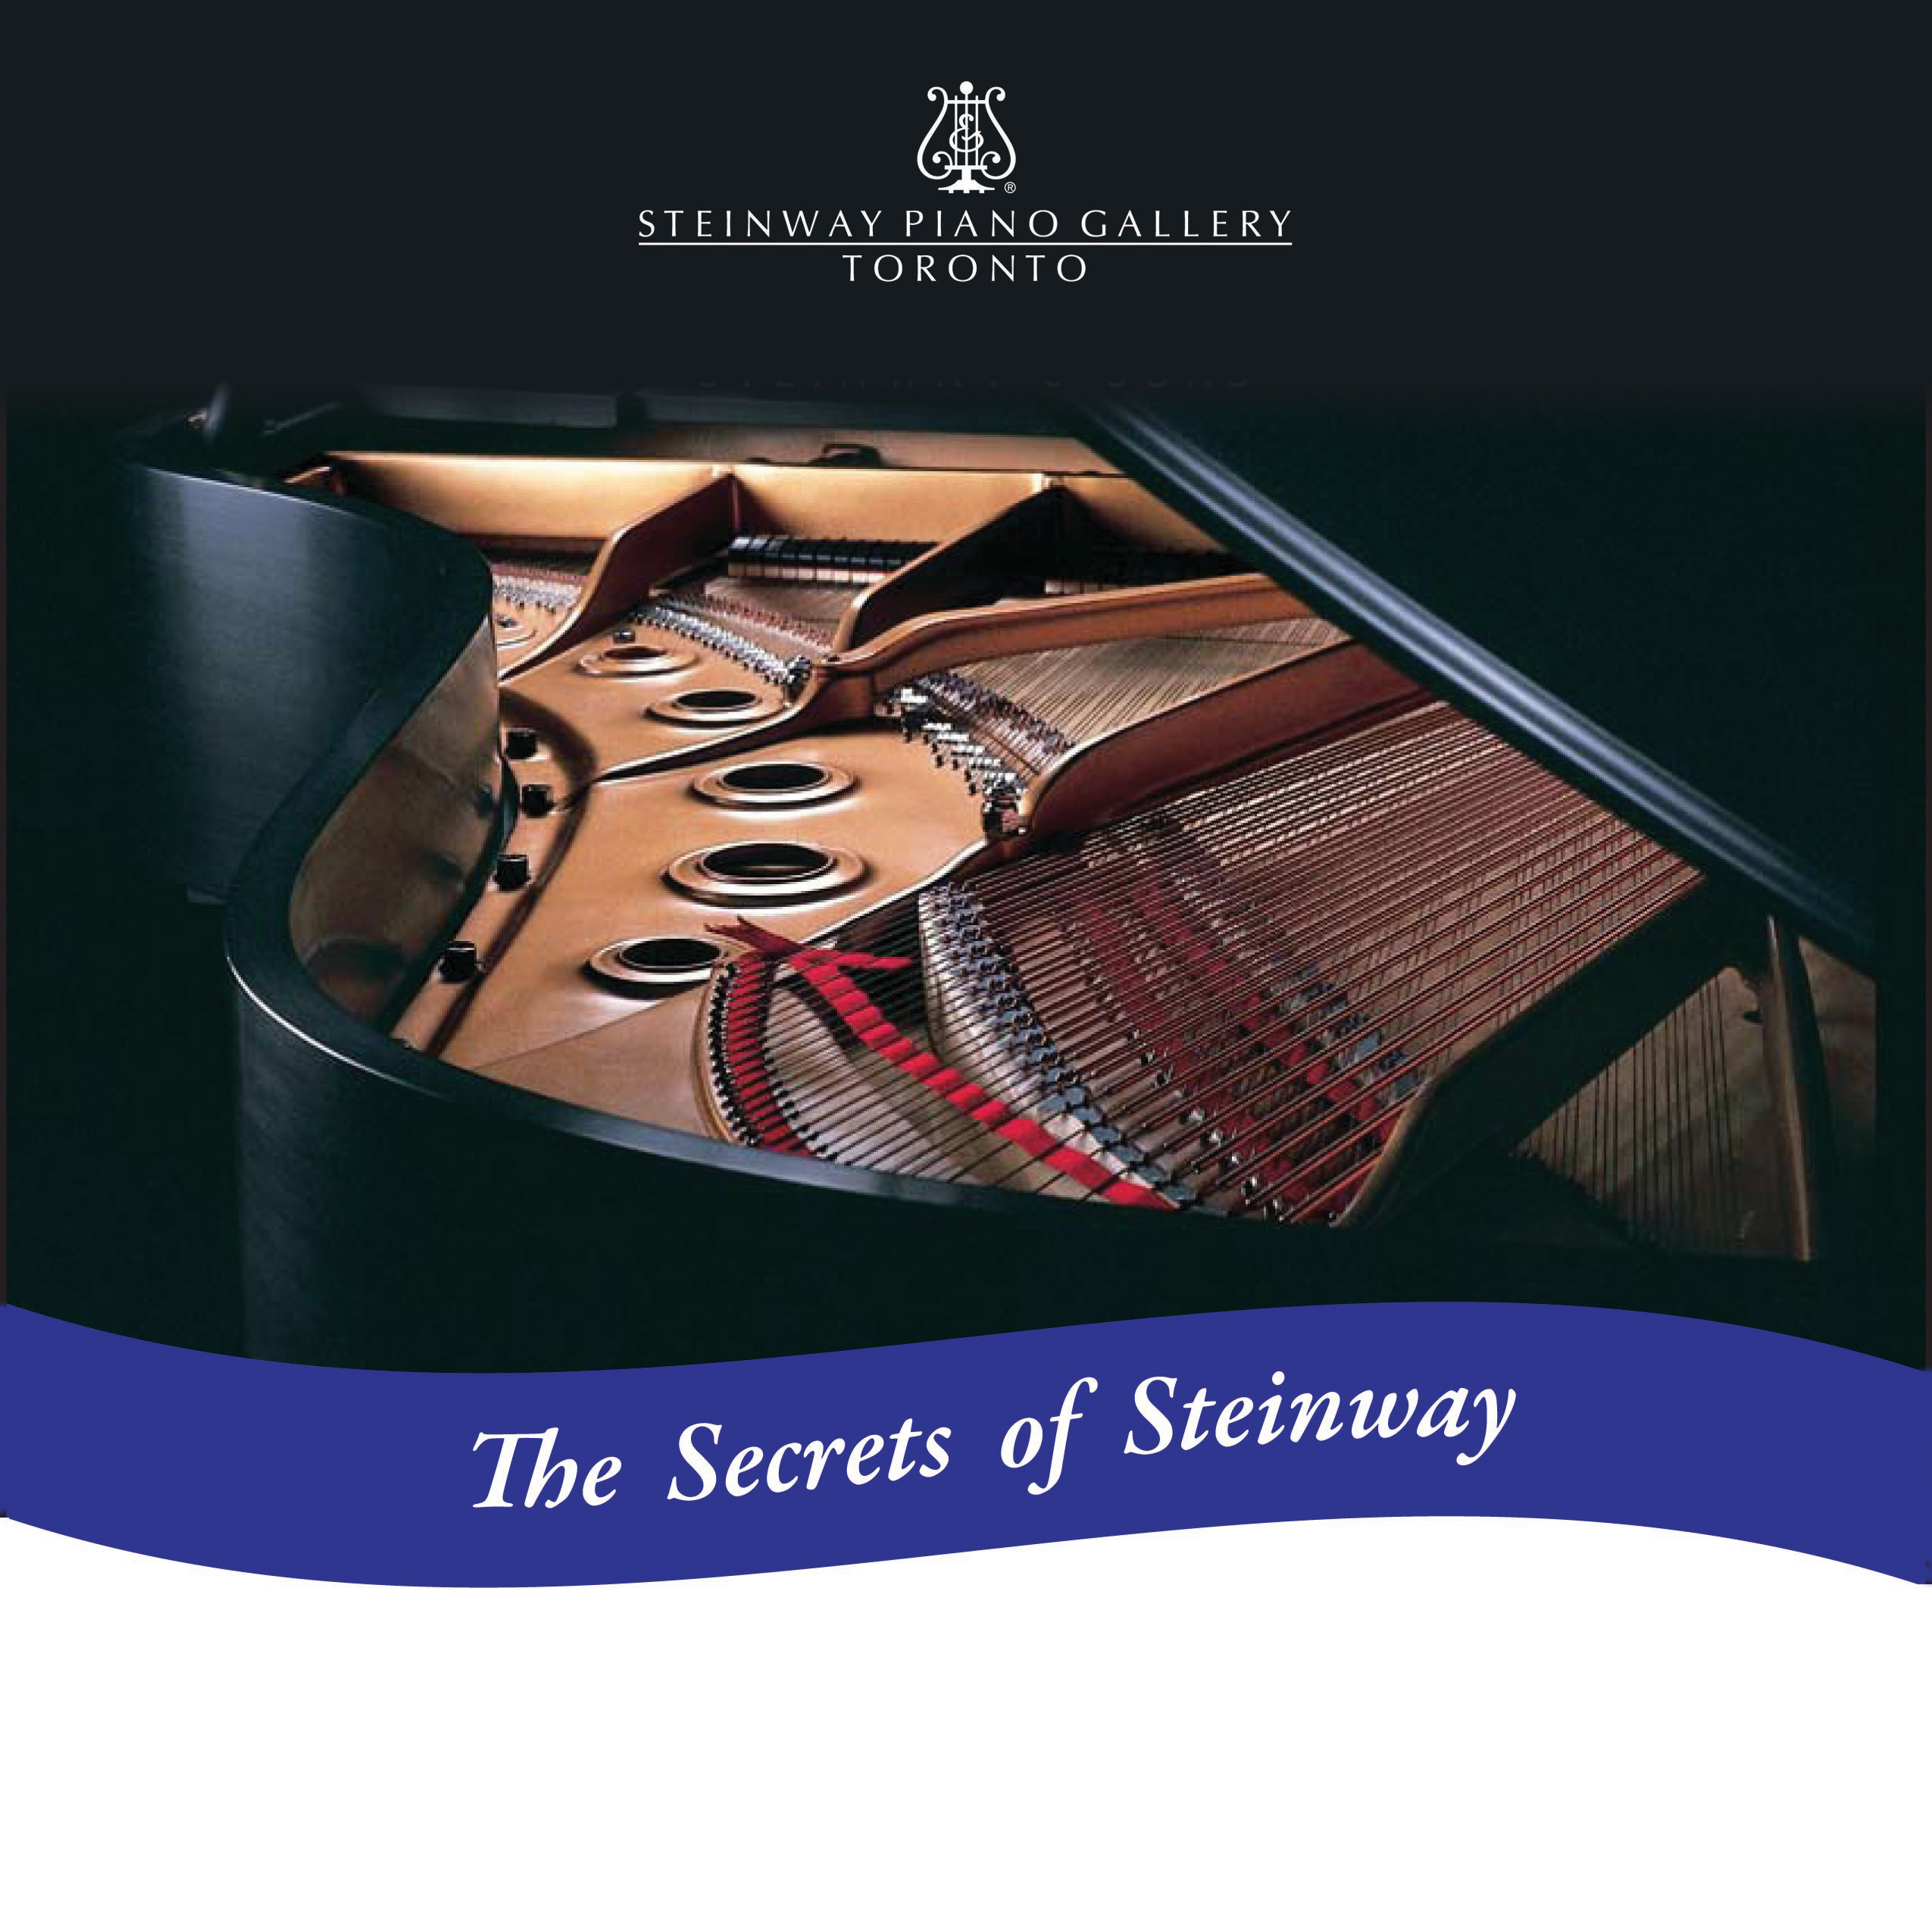 /news/2017/The-Secrets-of-Steinway